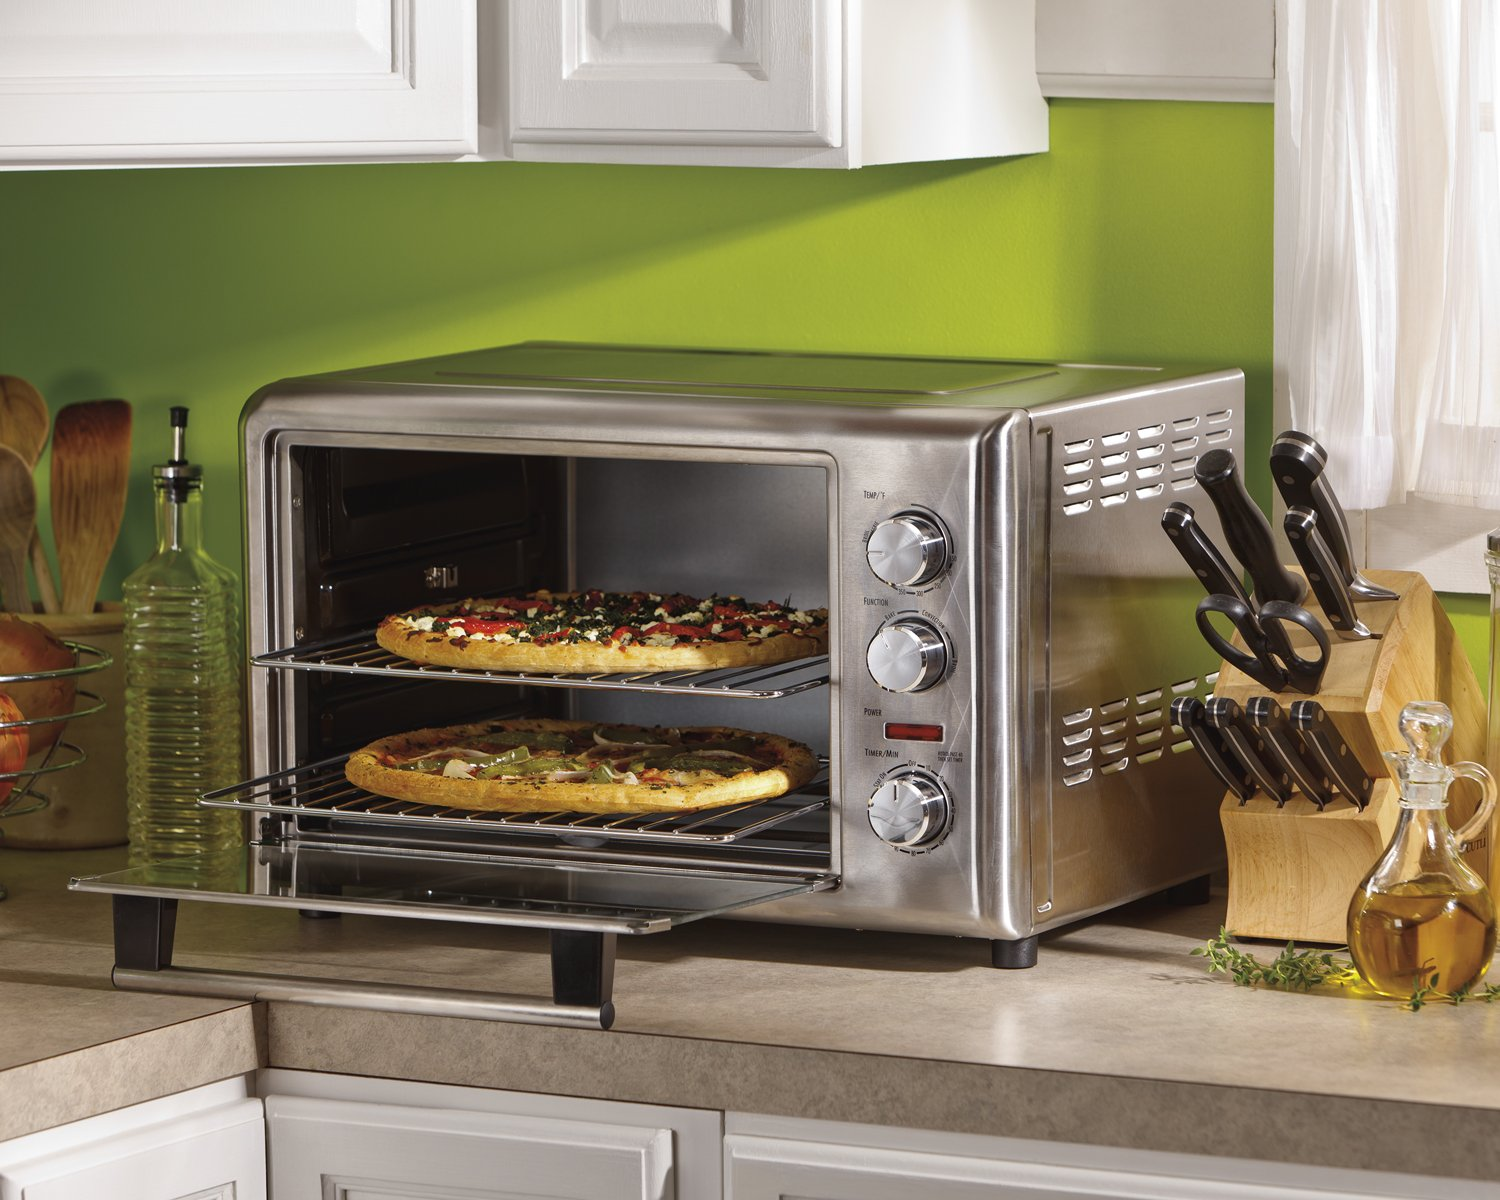 list of best convection oven reviews - Convection Ovens